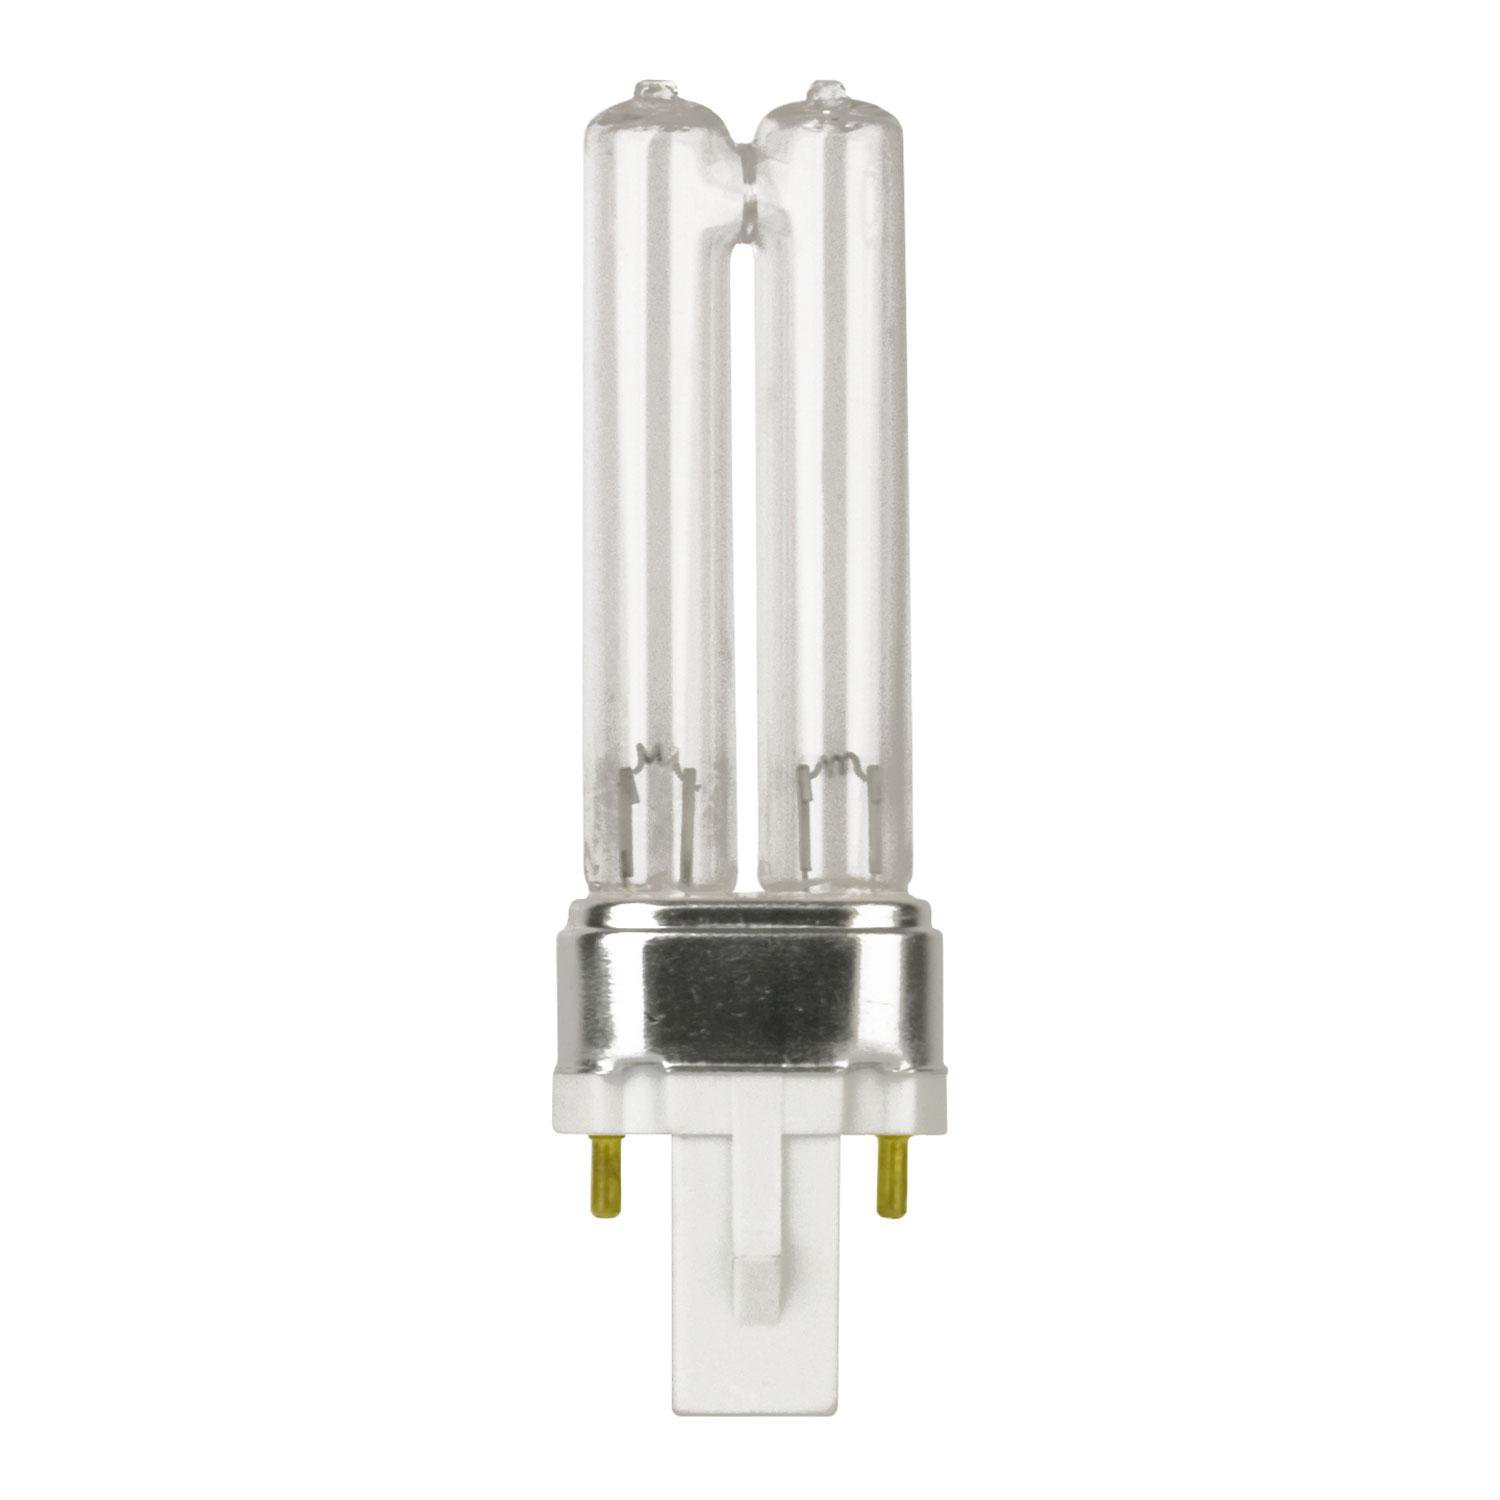 tetrapond uv replacement bulbs 5 watts